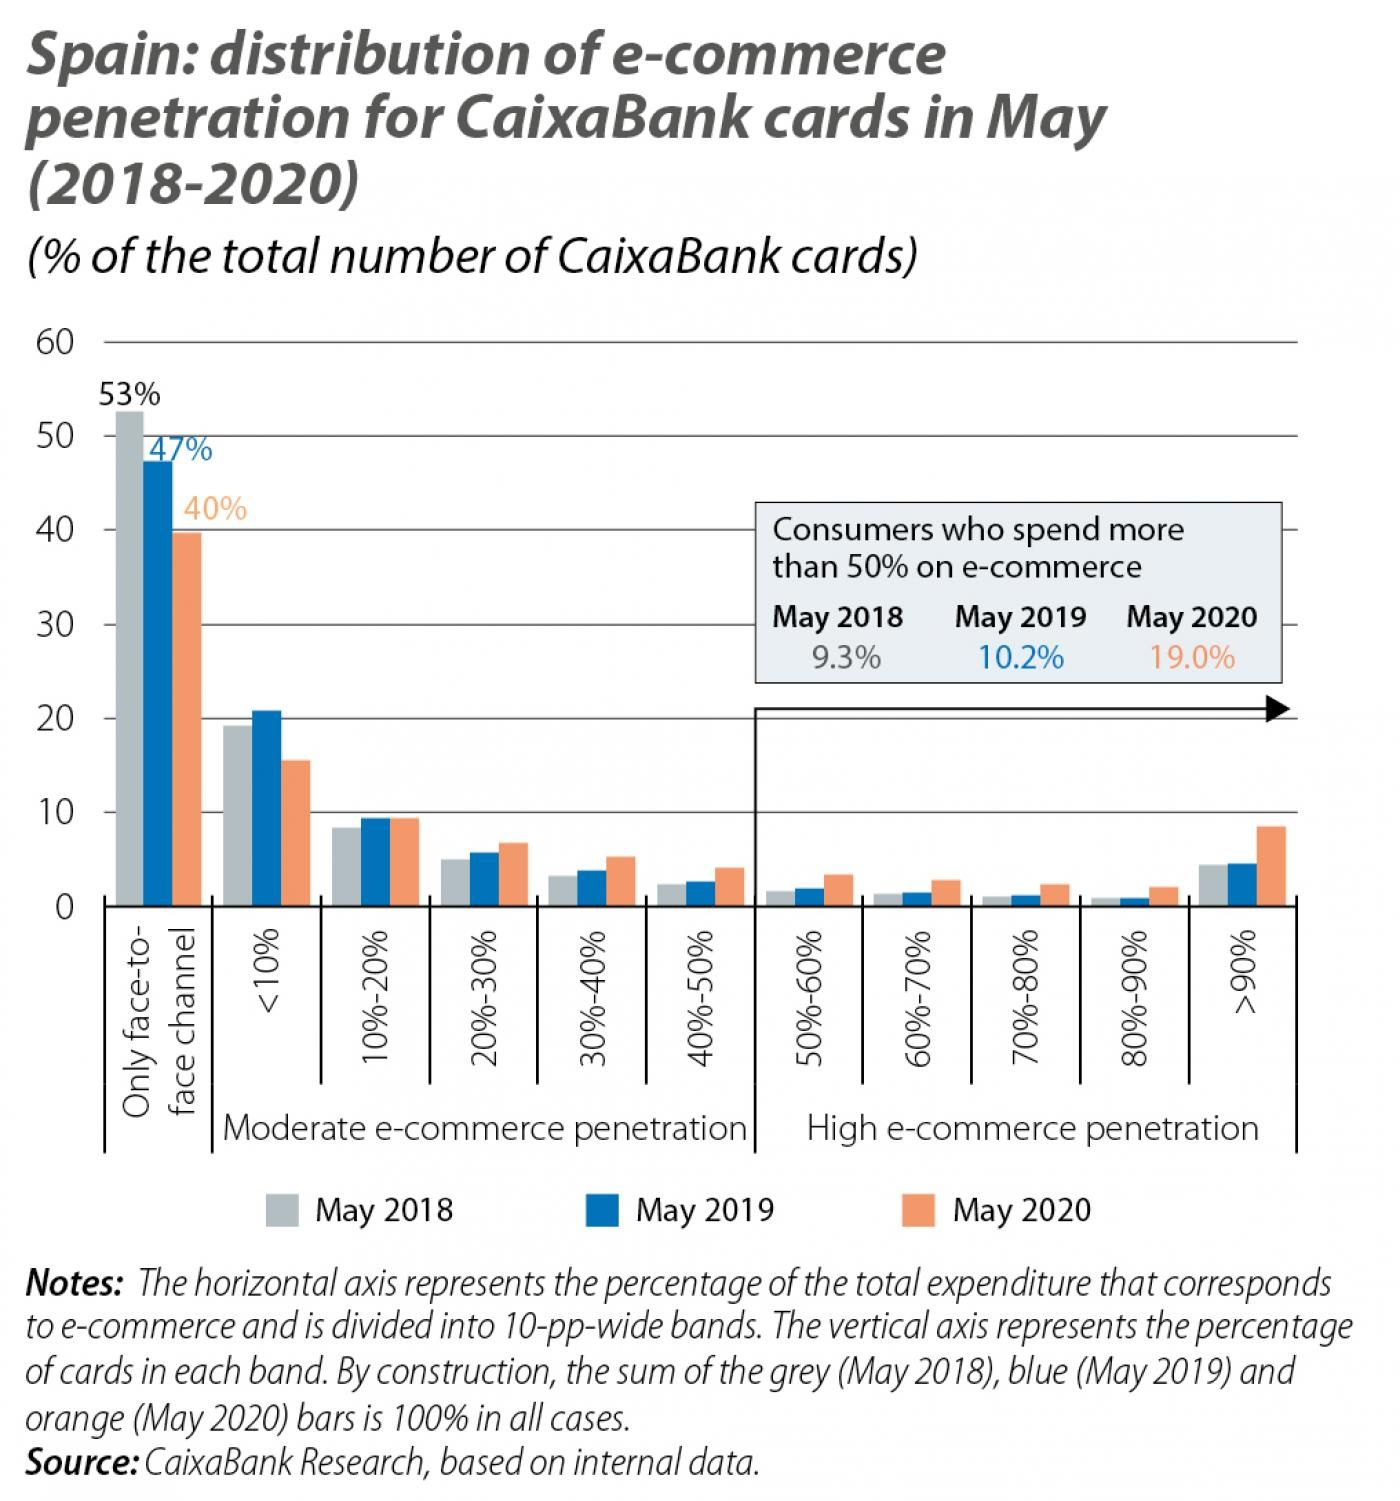 Spain: distribution of e-commerce penetration for CaixaBank cards in May (2018-2020)